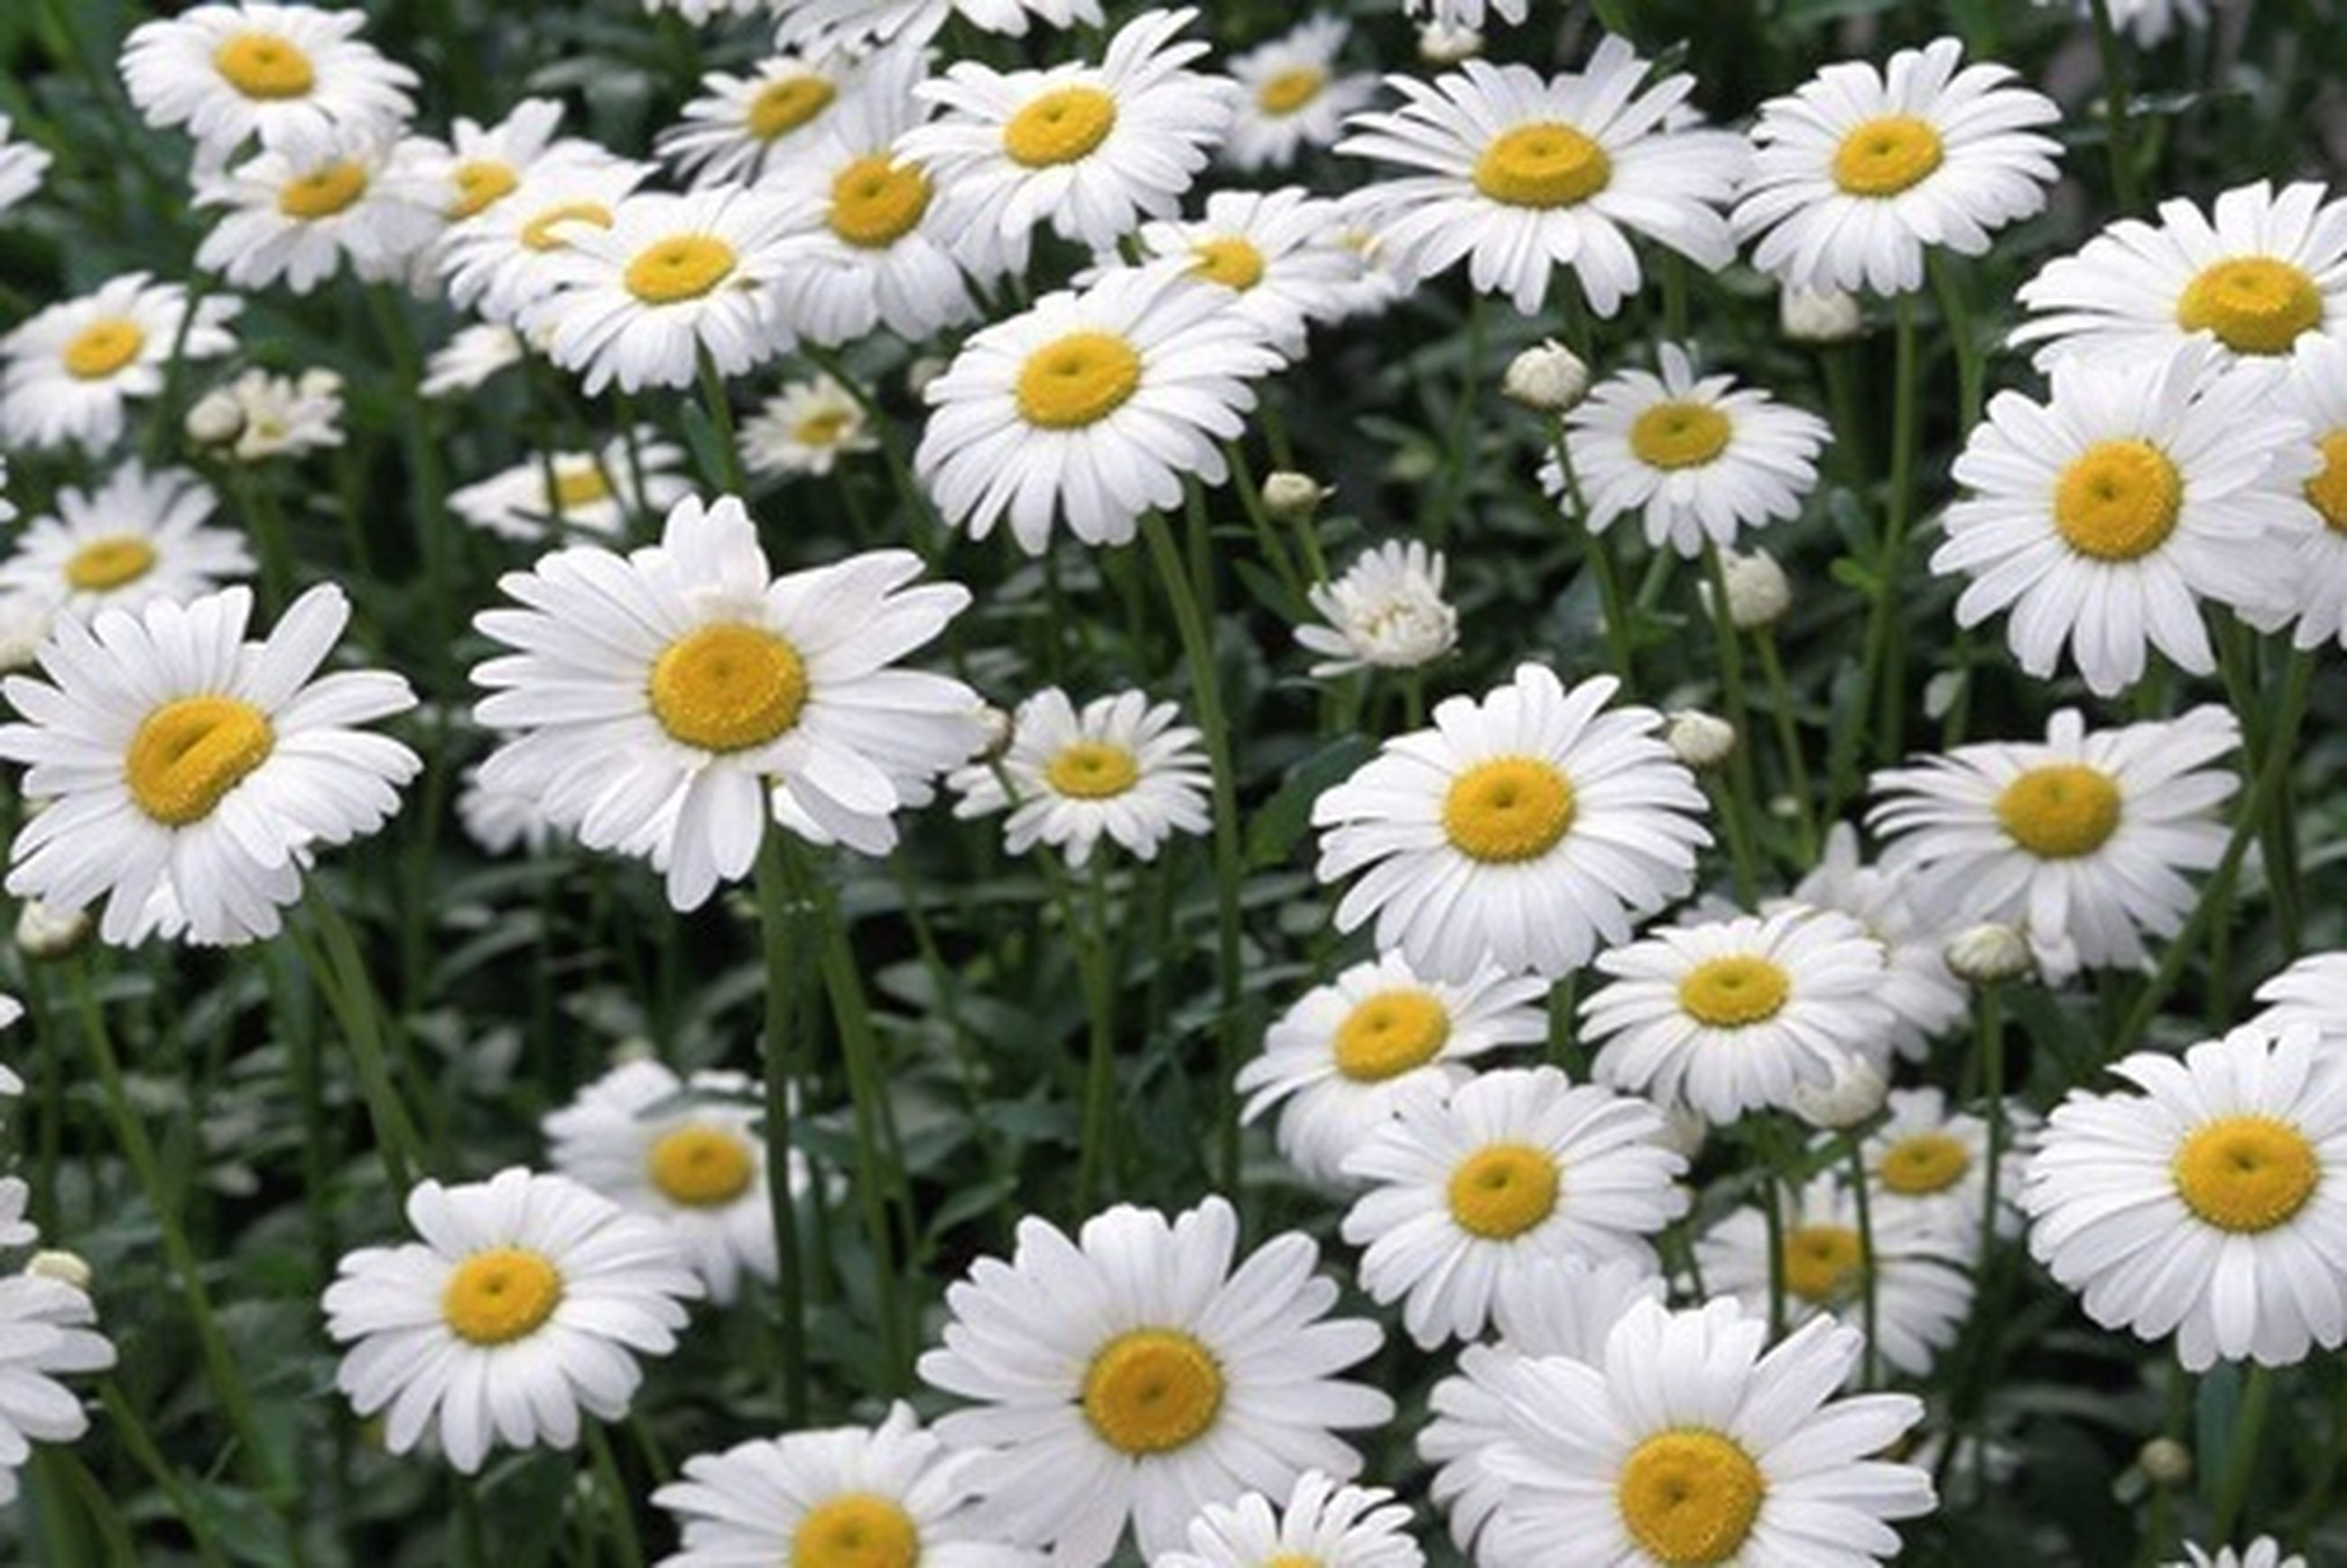 flower, freshness, petal, fragility, growth, daisy, white color, beauty in nature, flower head, nature, blooming, field, plant, pollen, high angle view, abundance, close-up, yellow, focus on foreground, day